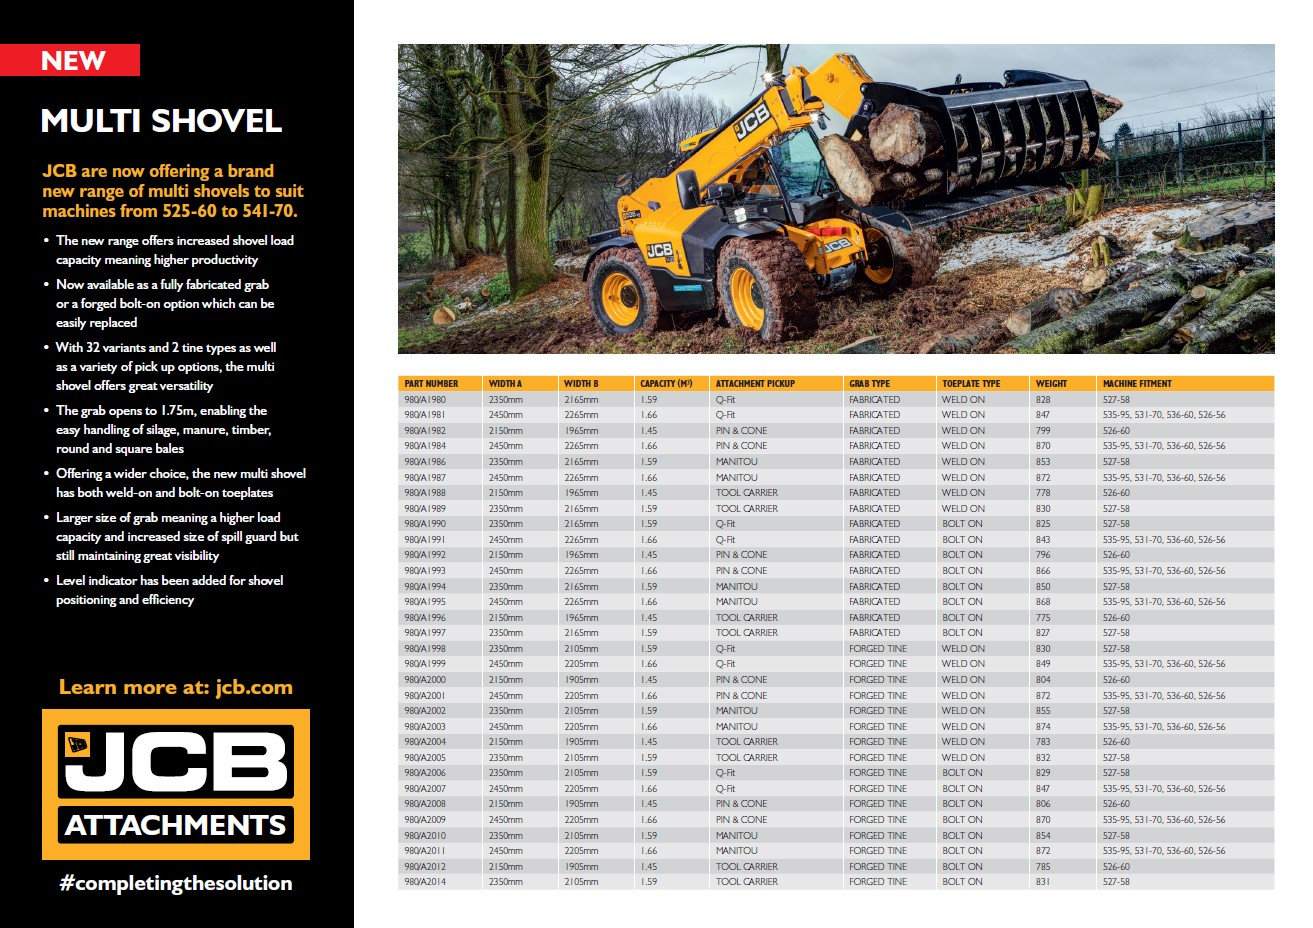 Cover Image of 1058 - JCB Attachments - Multishovel Leaflet A4